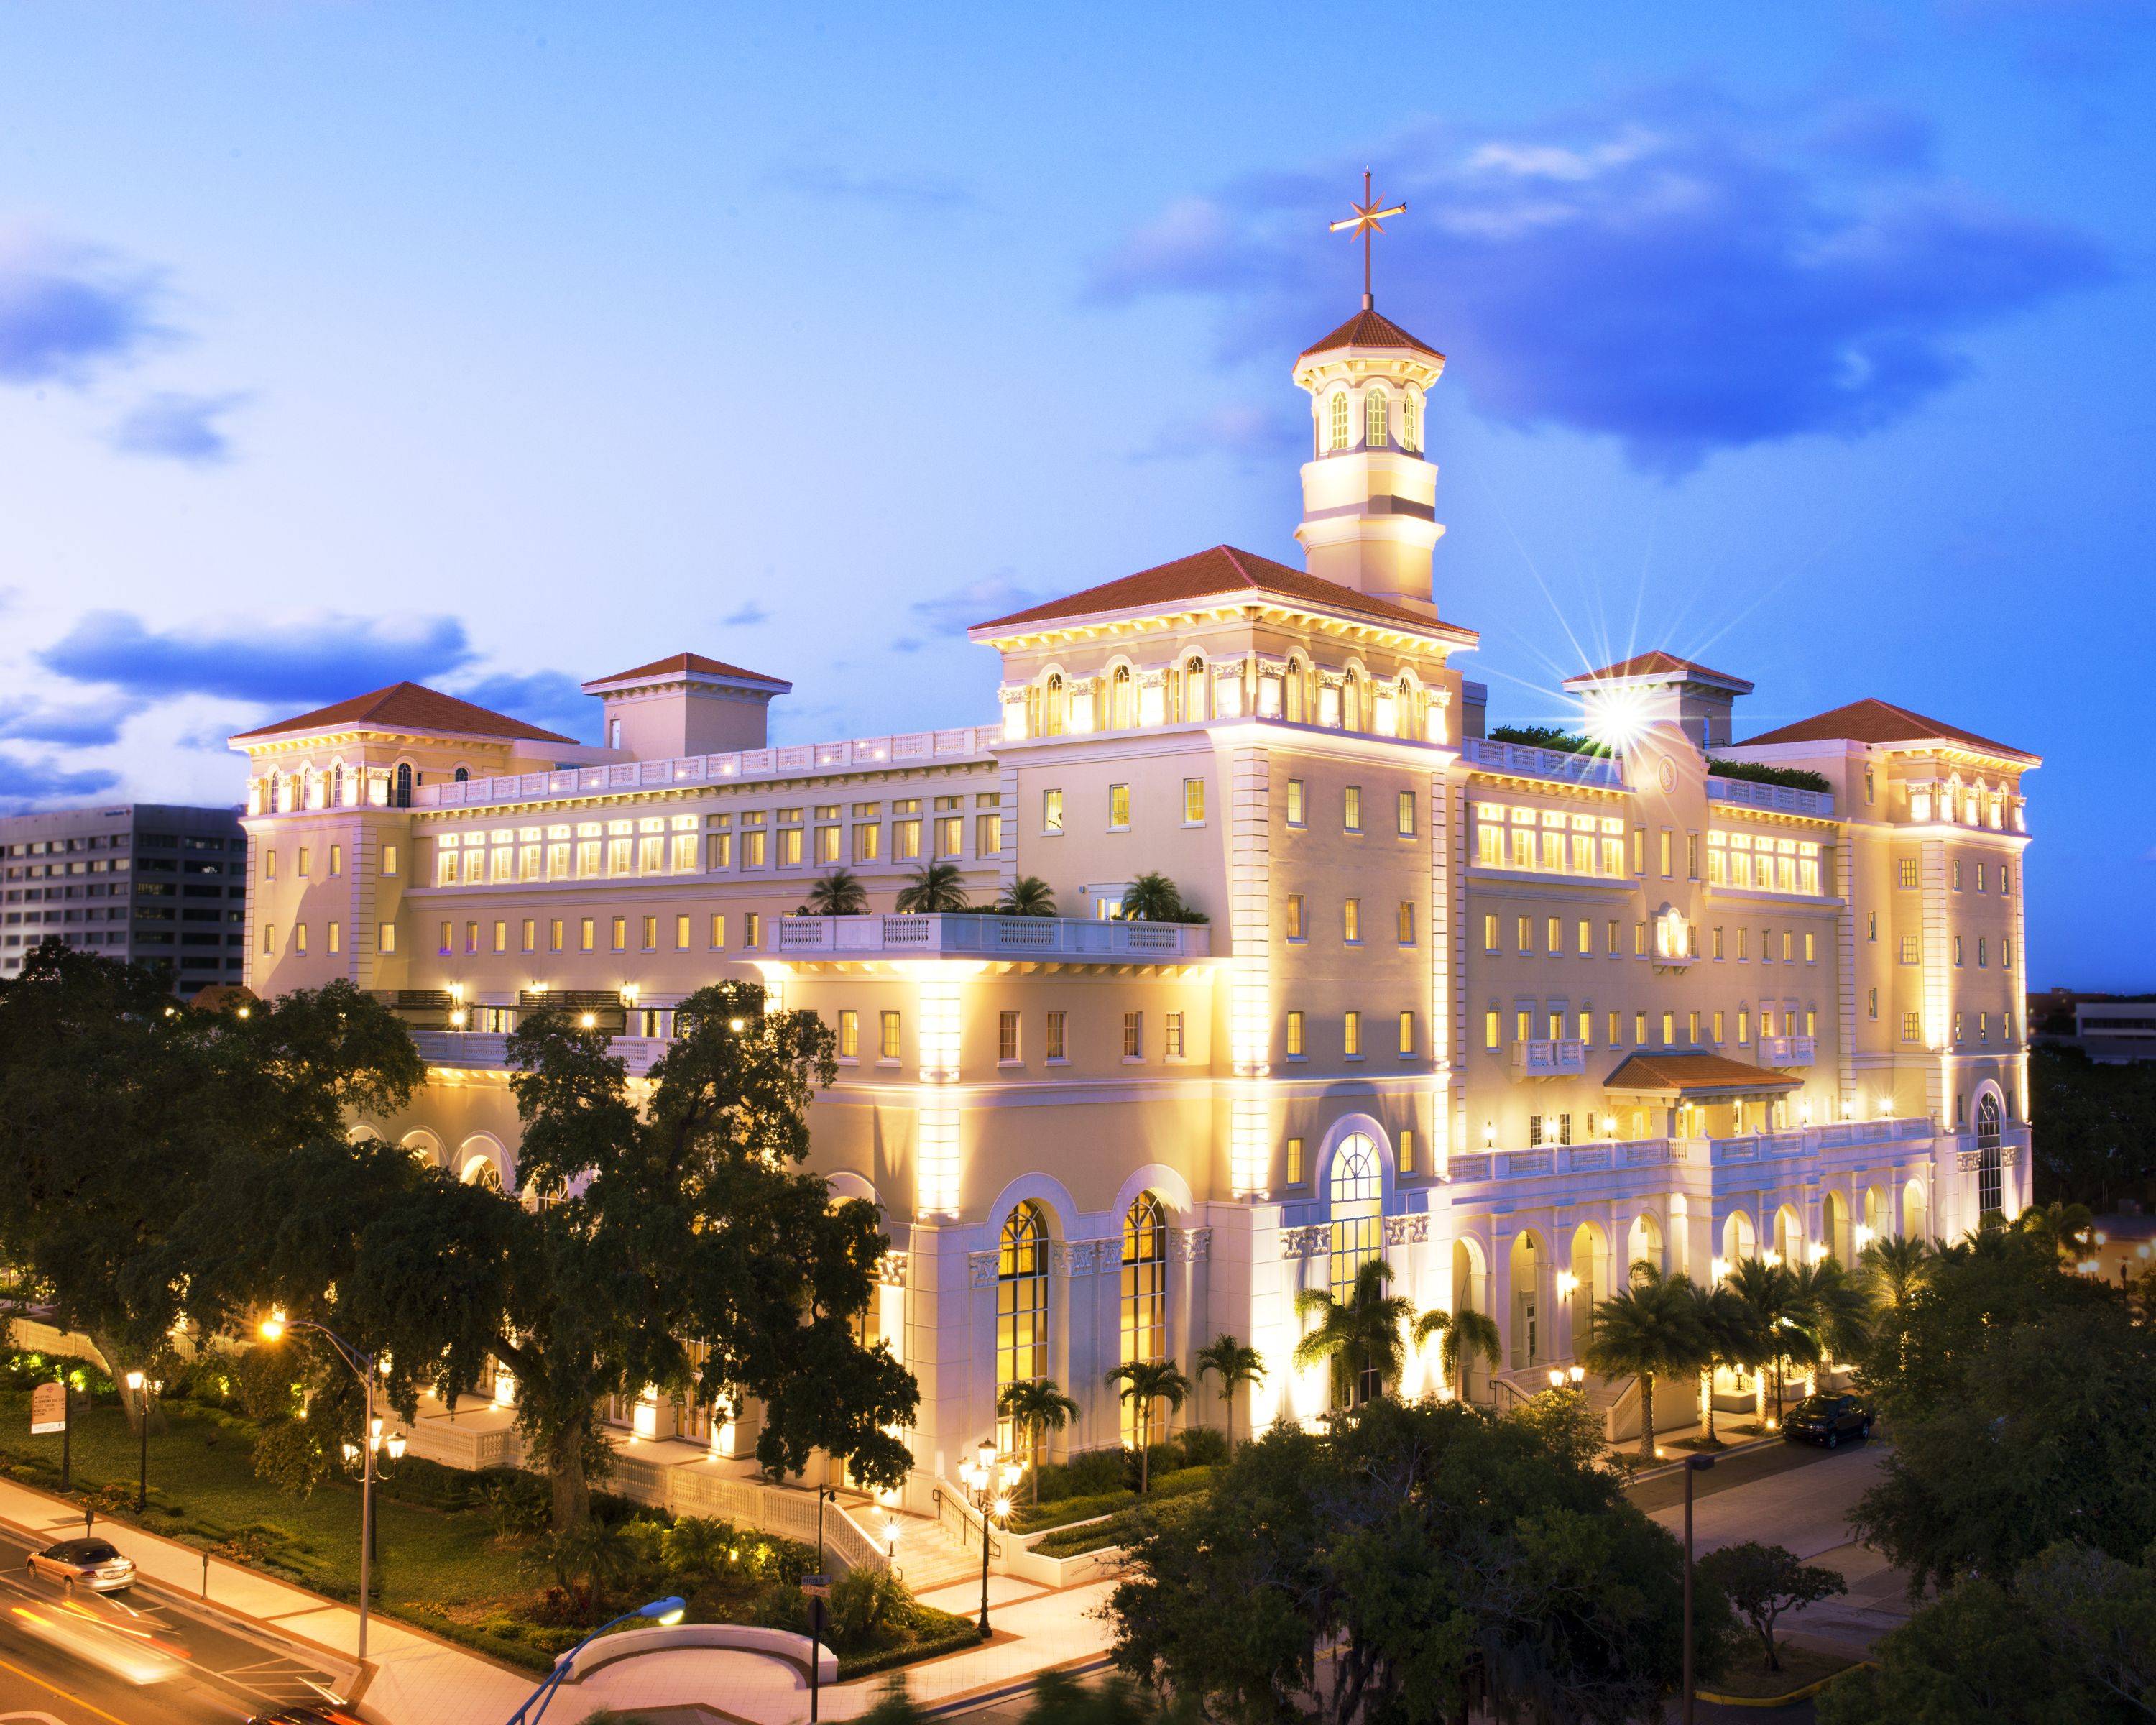 The Church of Scientology celebrates 65th anniversary, growing bigger than ever